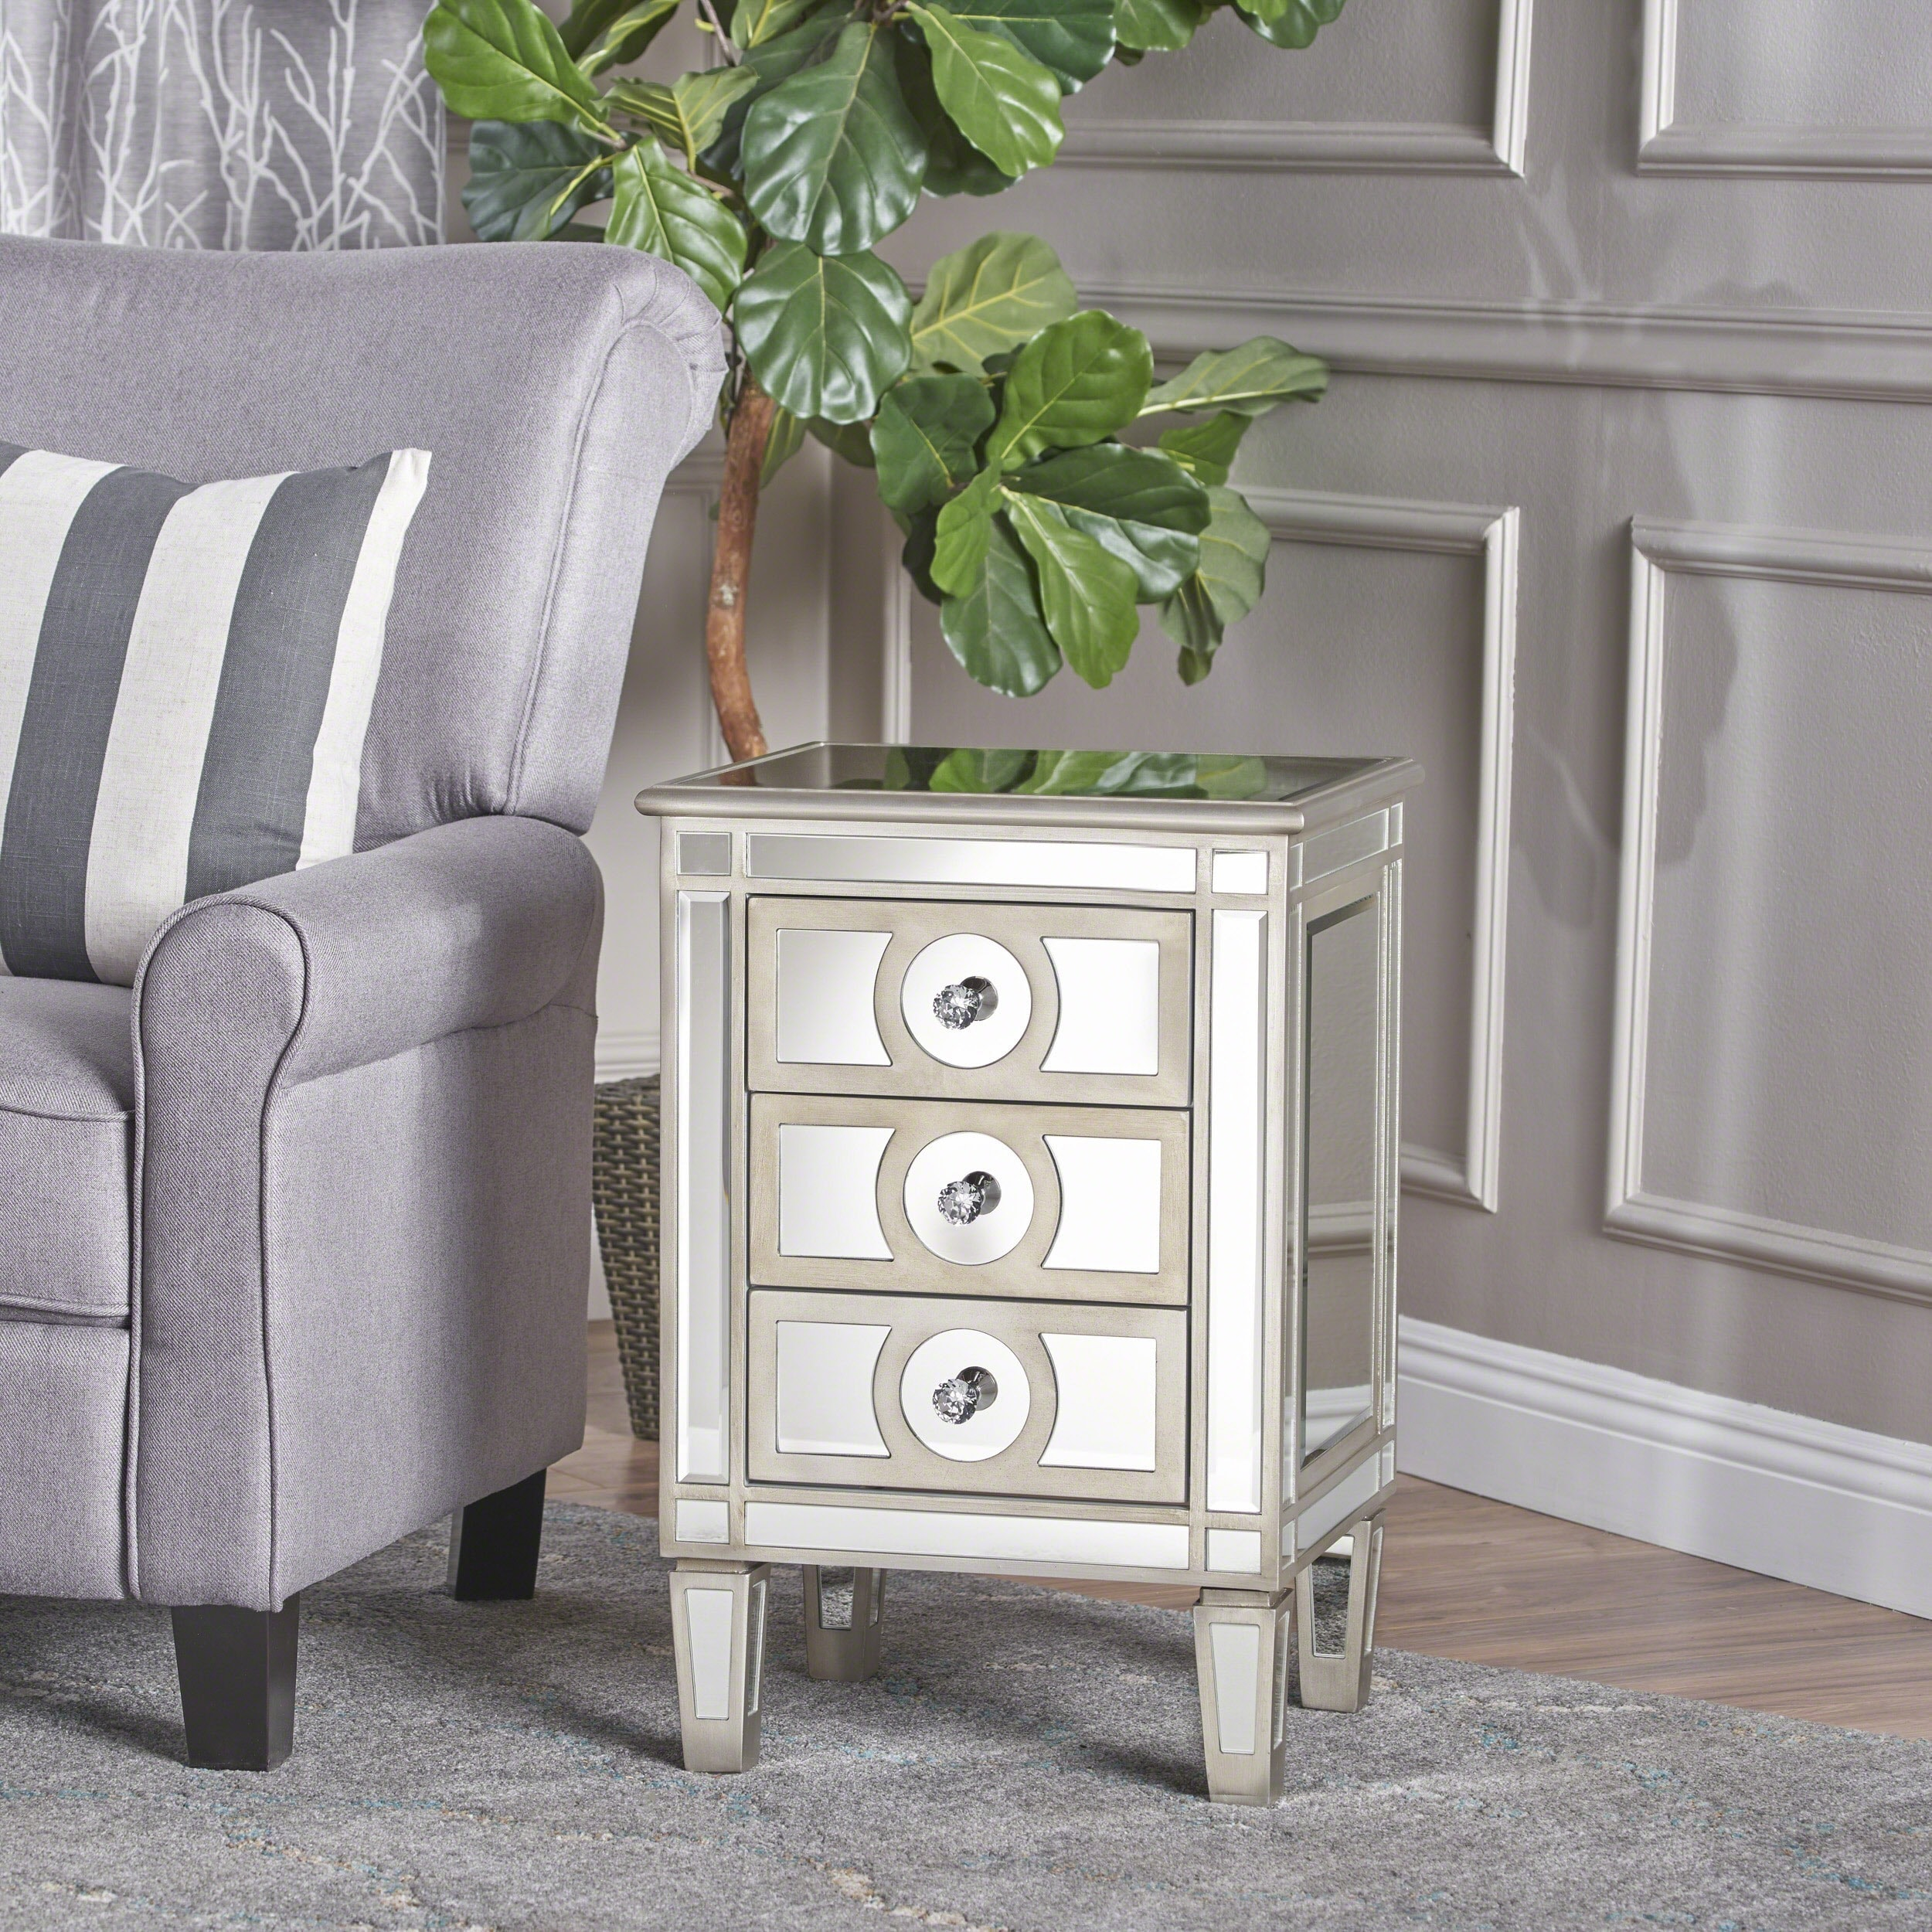 Christopher Knight Home Maeve Mirrored 3-Drawer Cabinet by